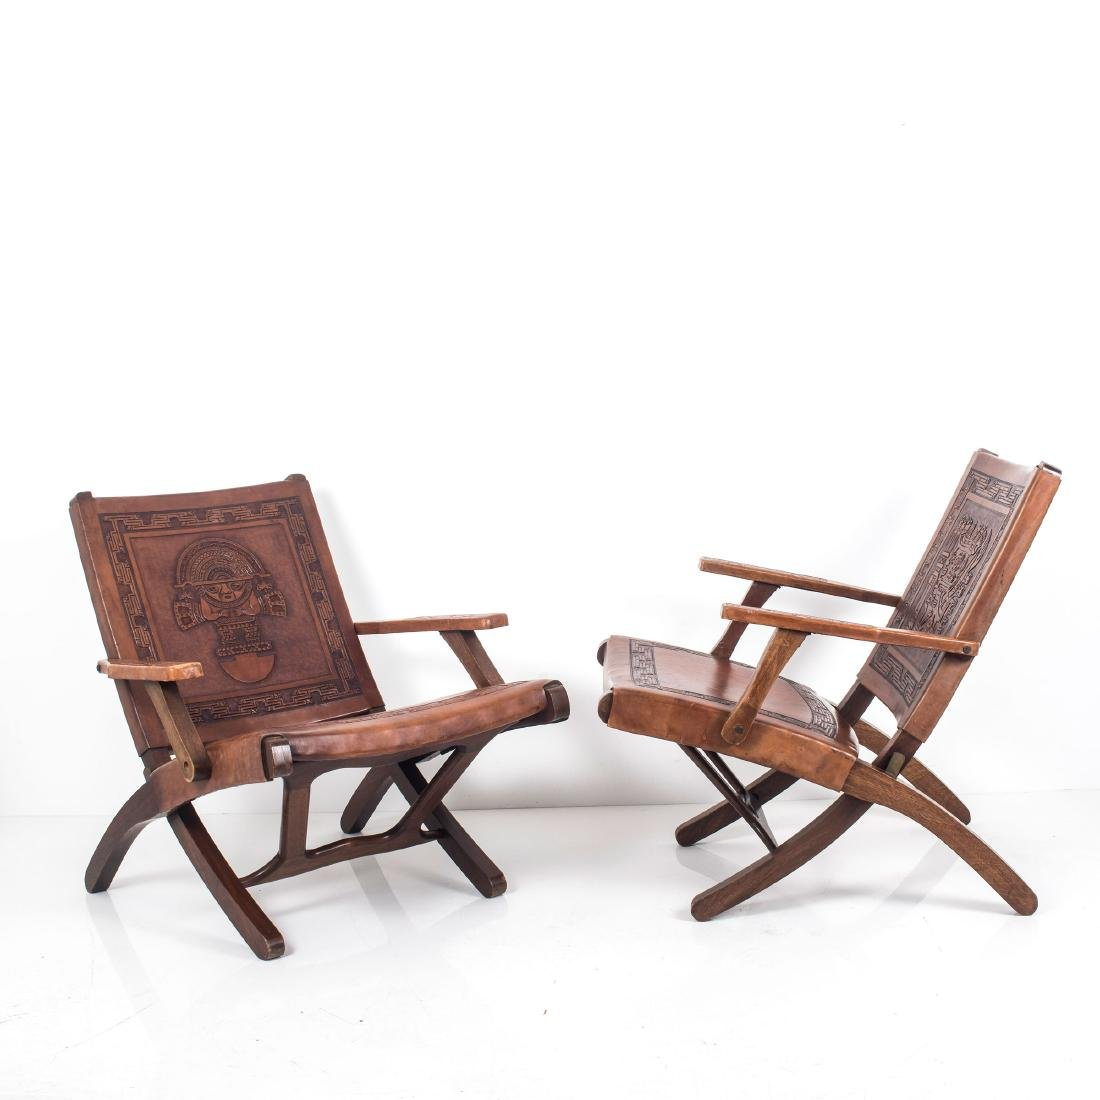 Two folding chairs, 1960s - 7